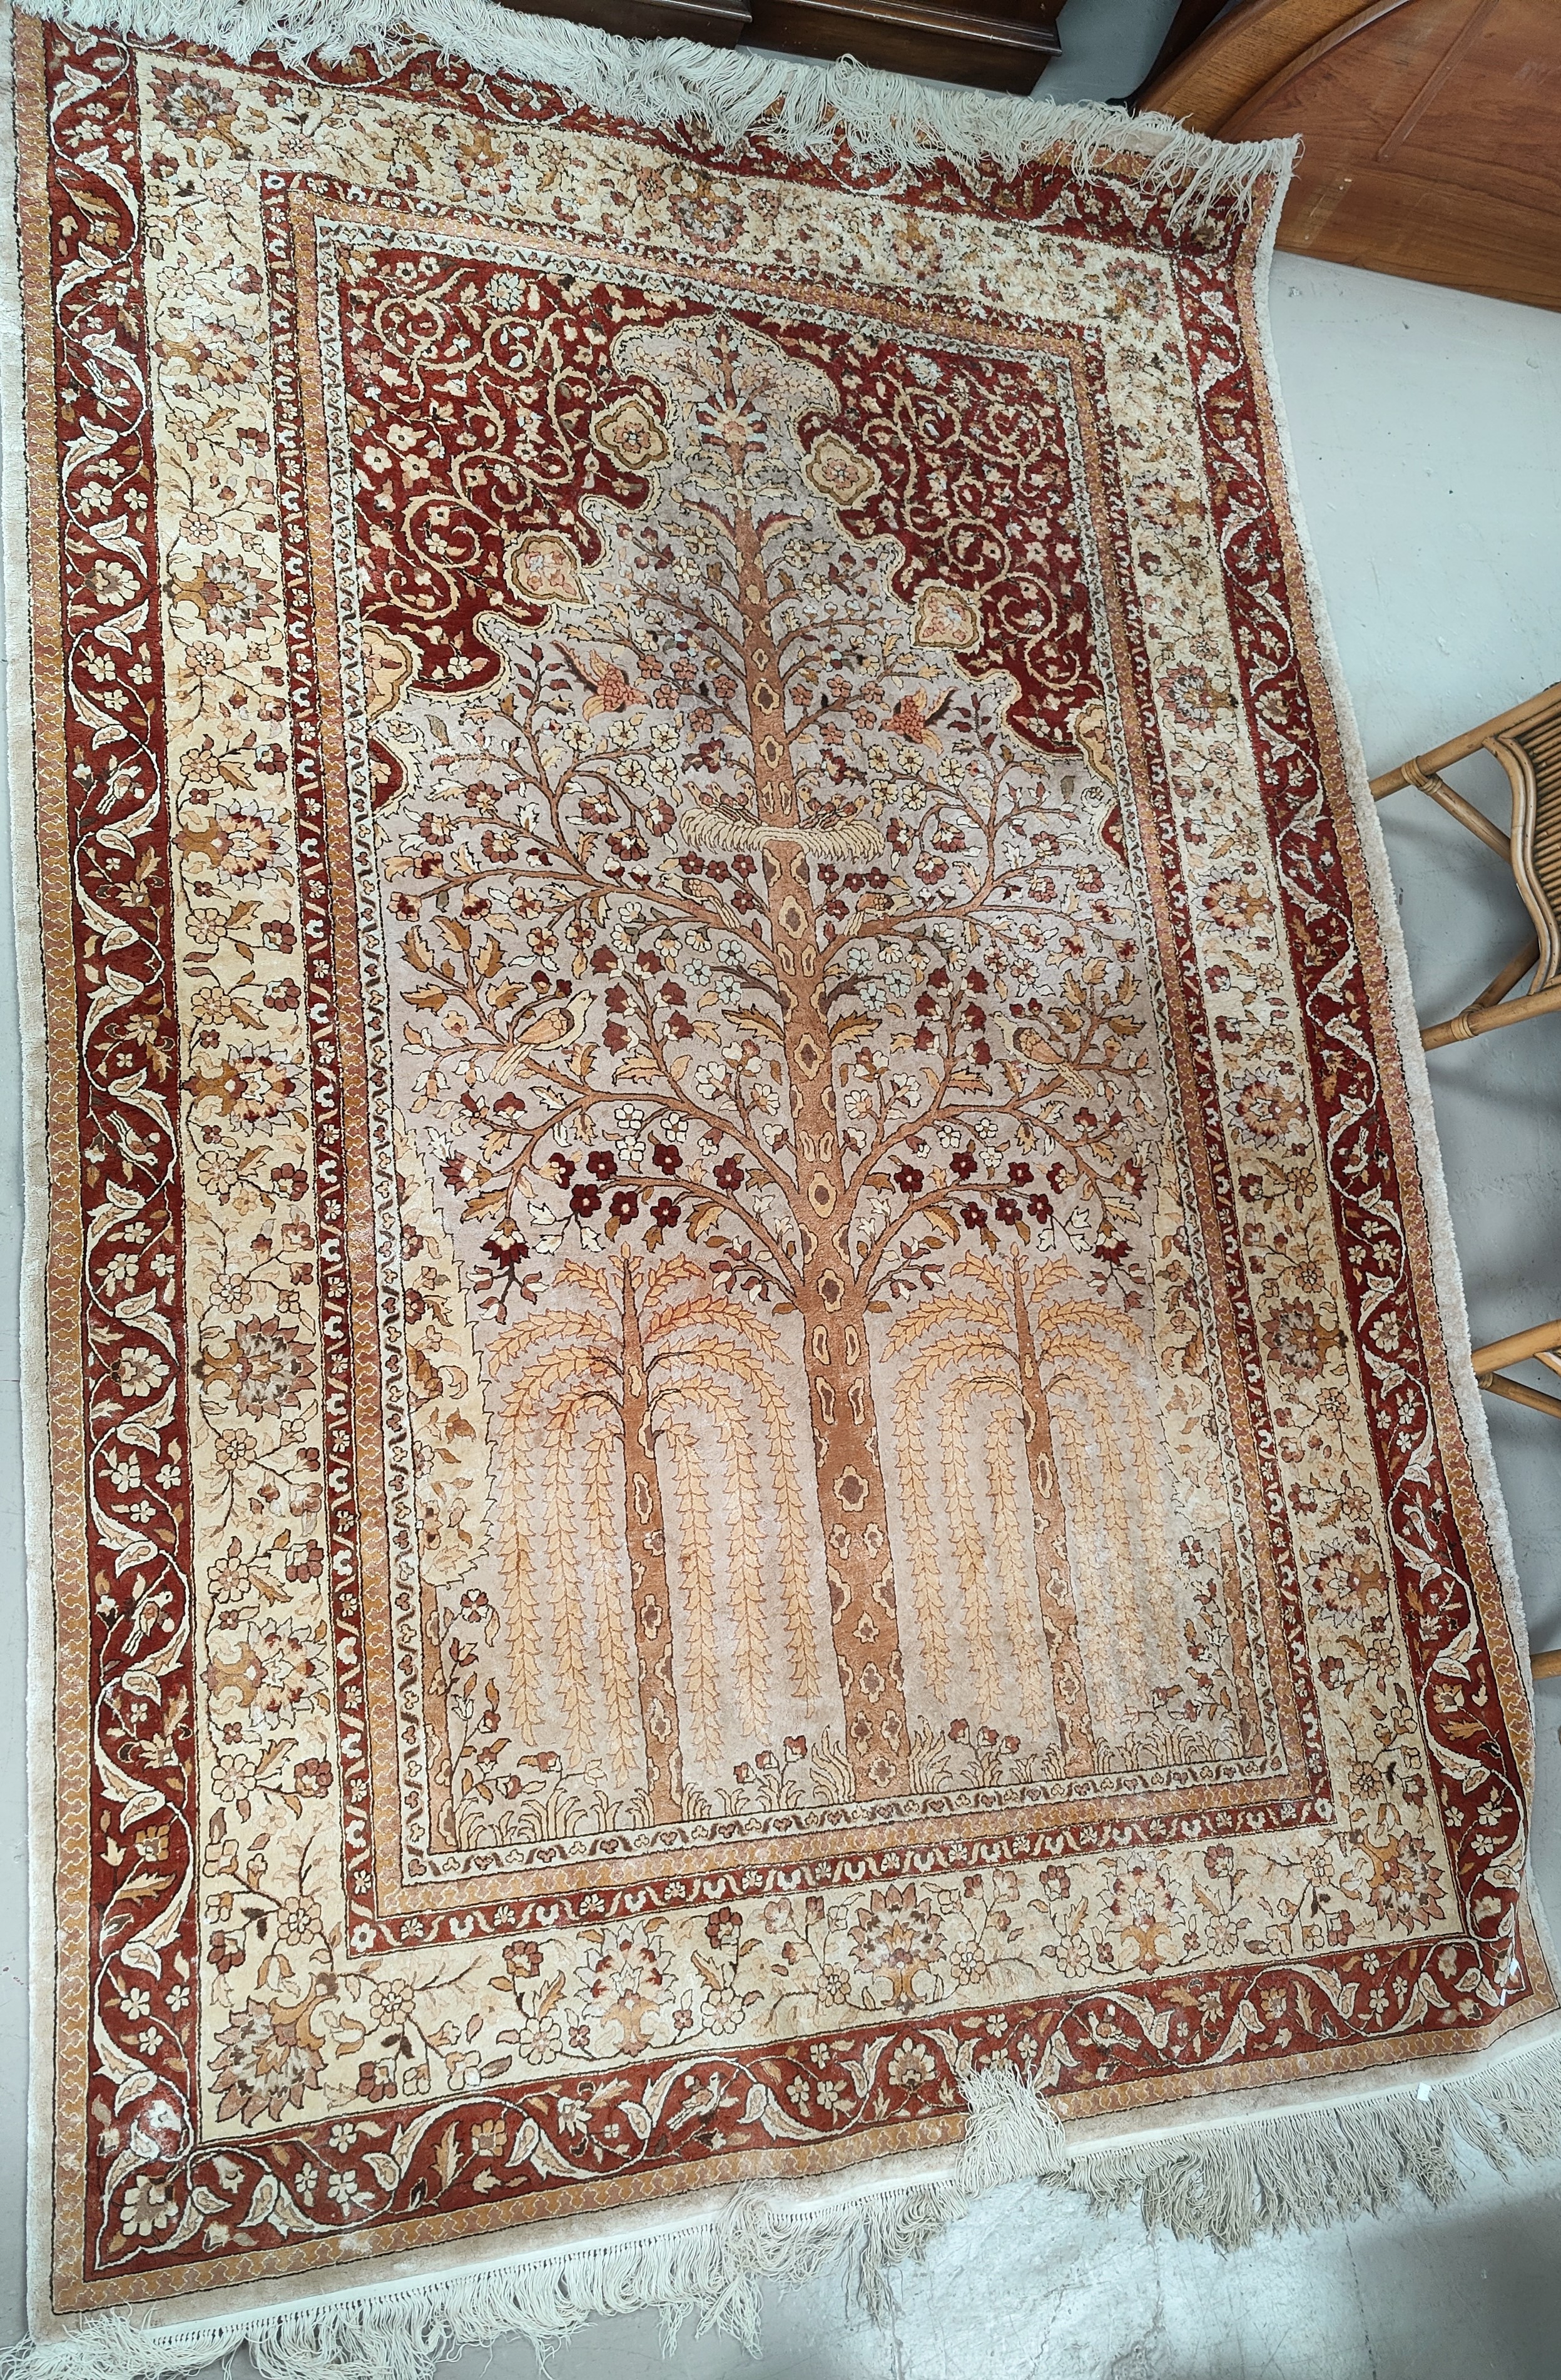 A mid 20th century Chinese silk carpet with Tree of Life pattern in the Persian manner, 6' x 9'